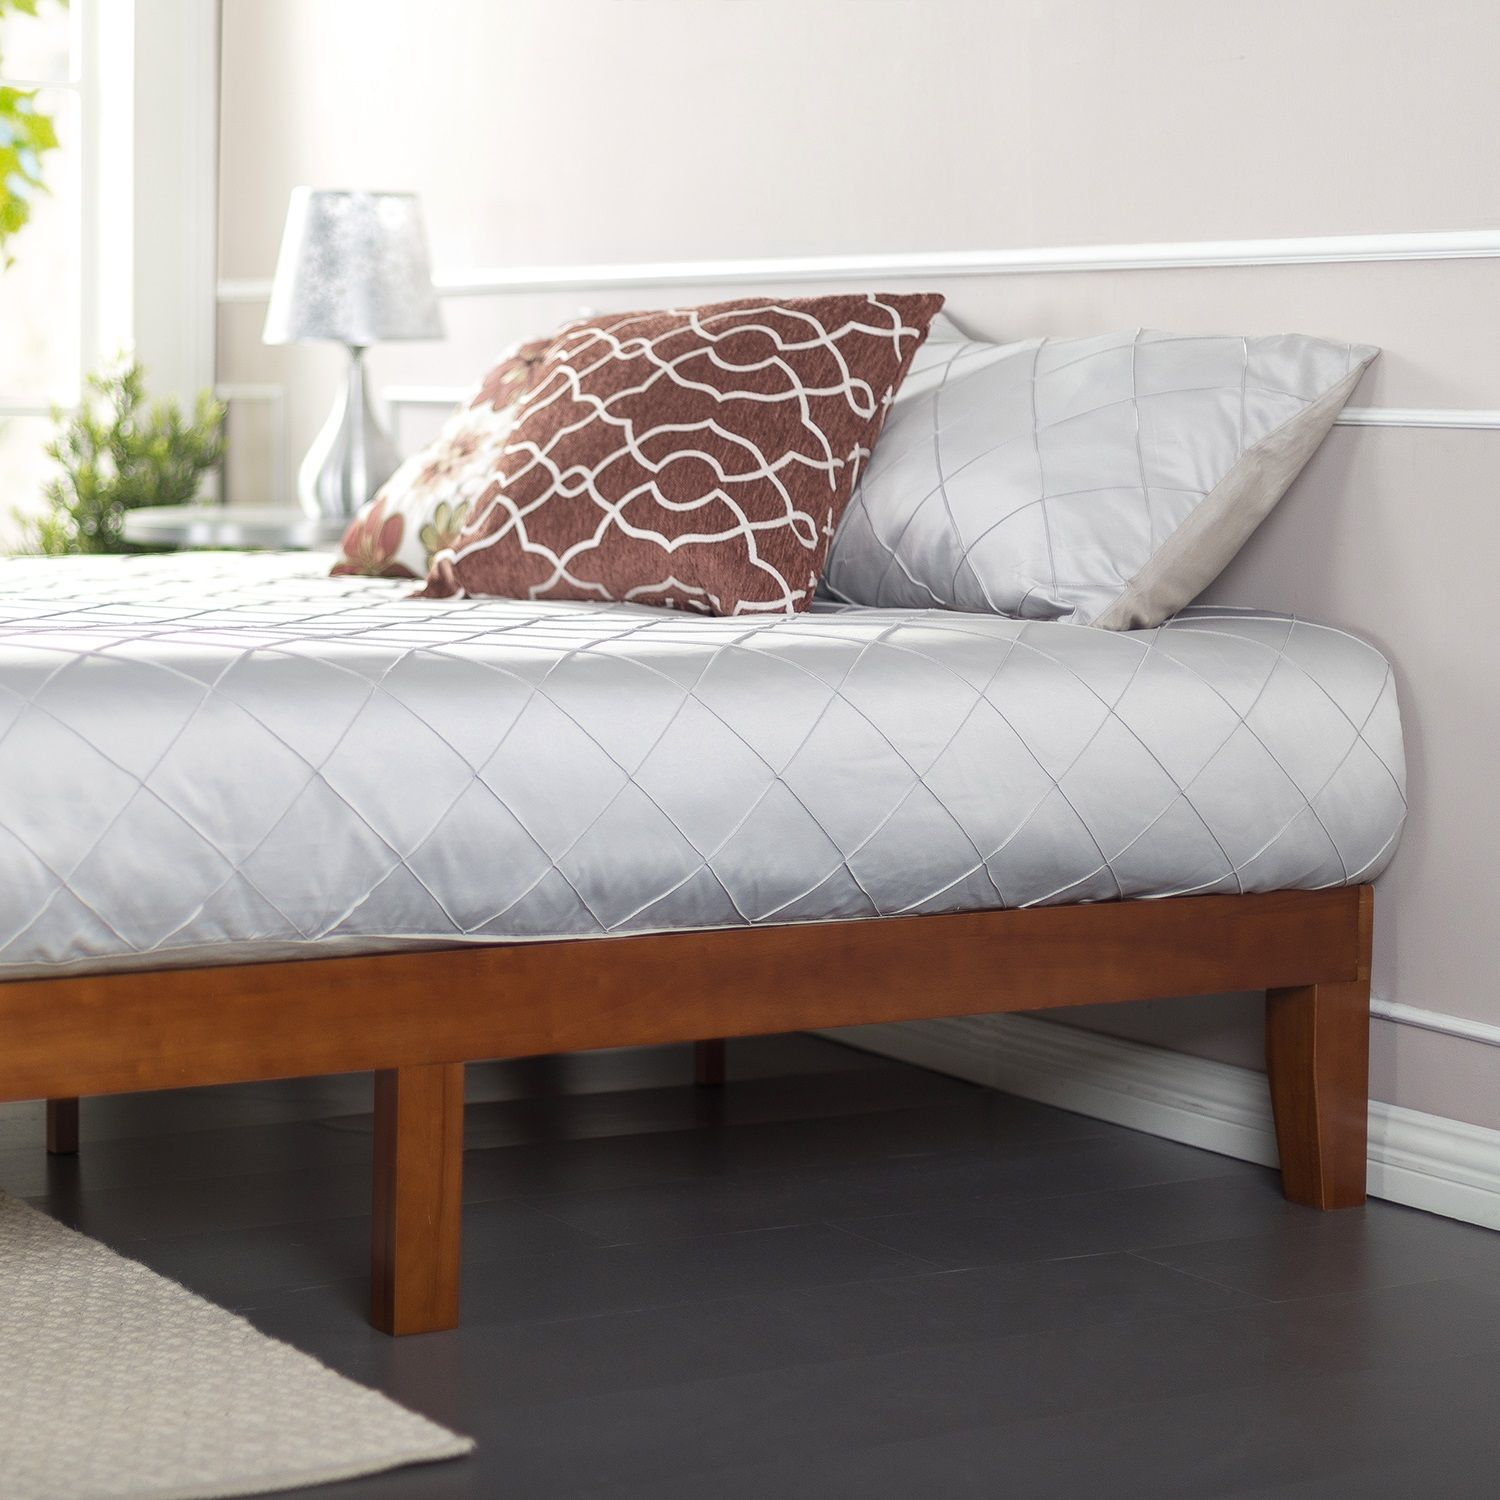 Pin by Michelle Gelman on Home Decor Wood platform bed